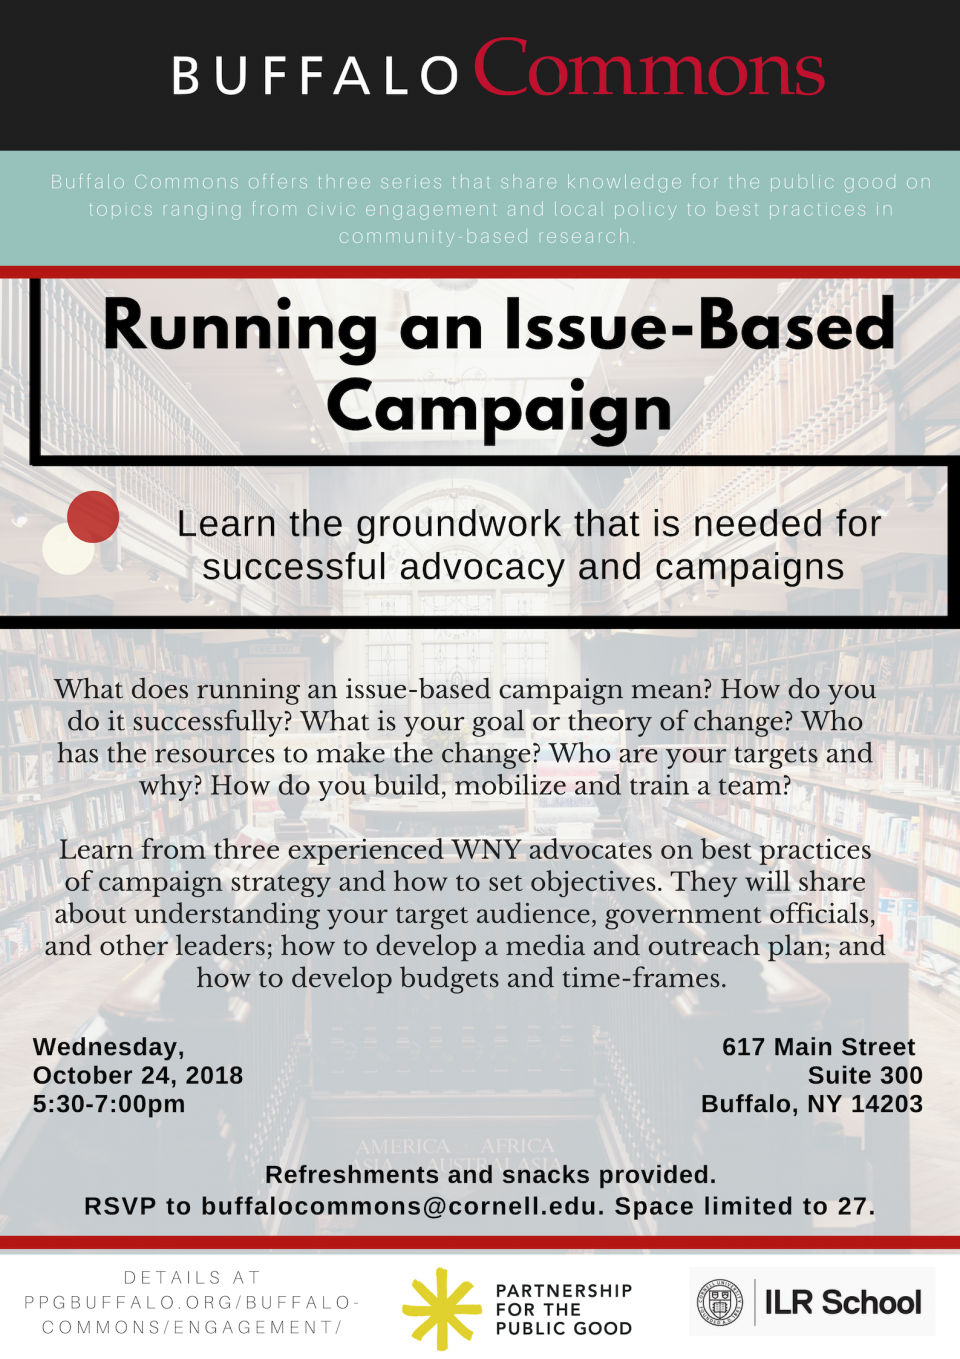 Running an Issue-Based Campaign